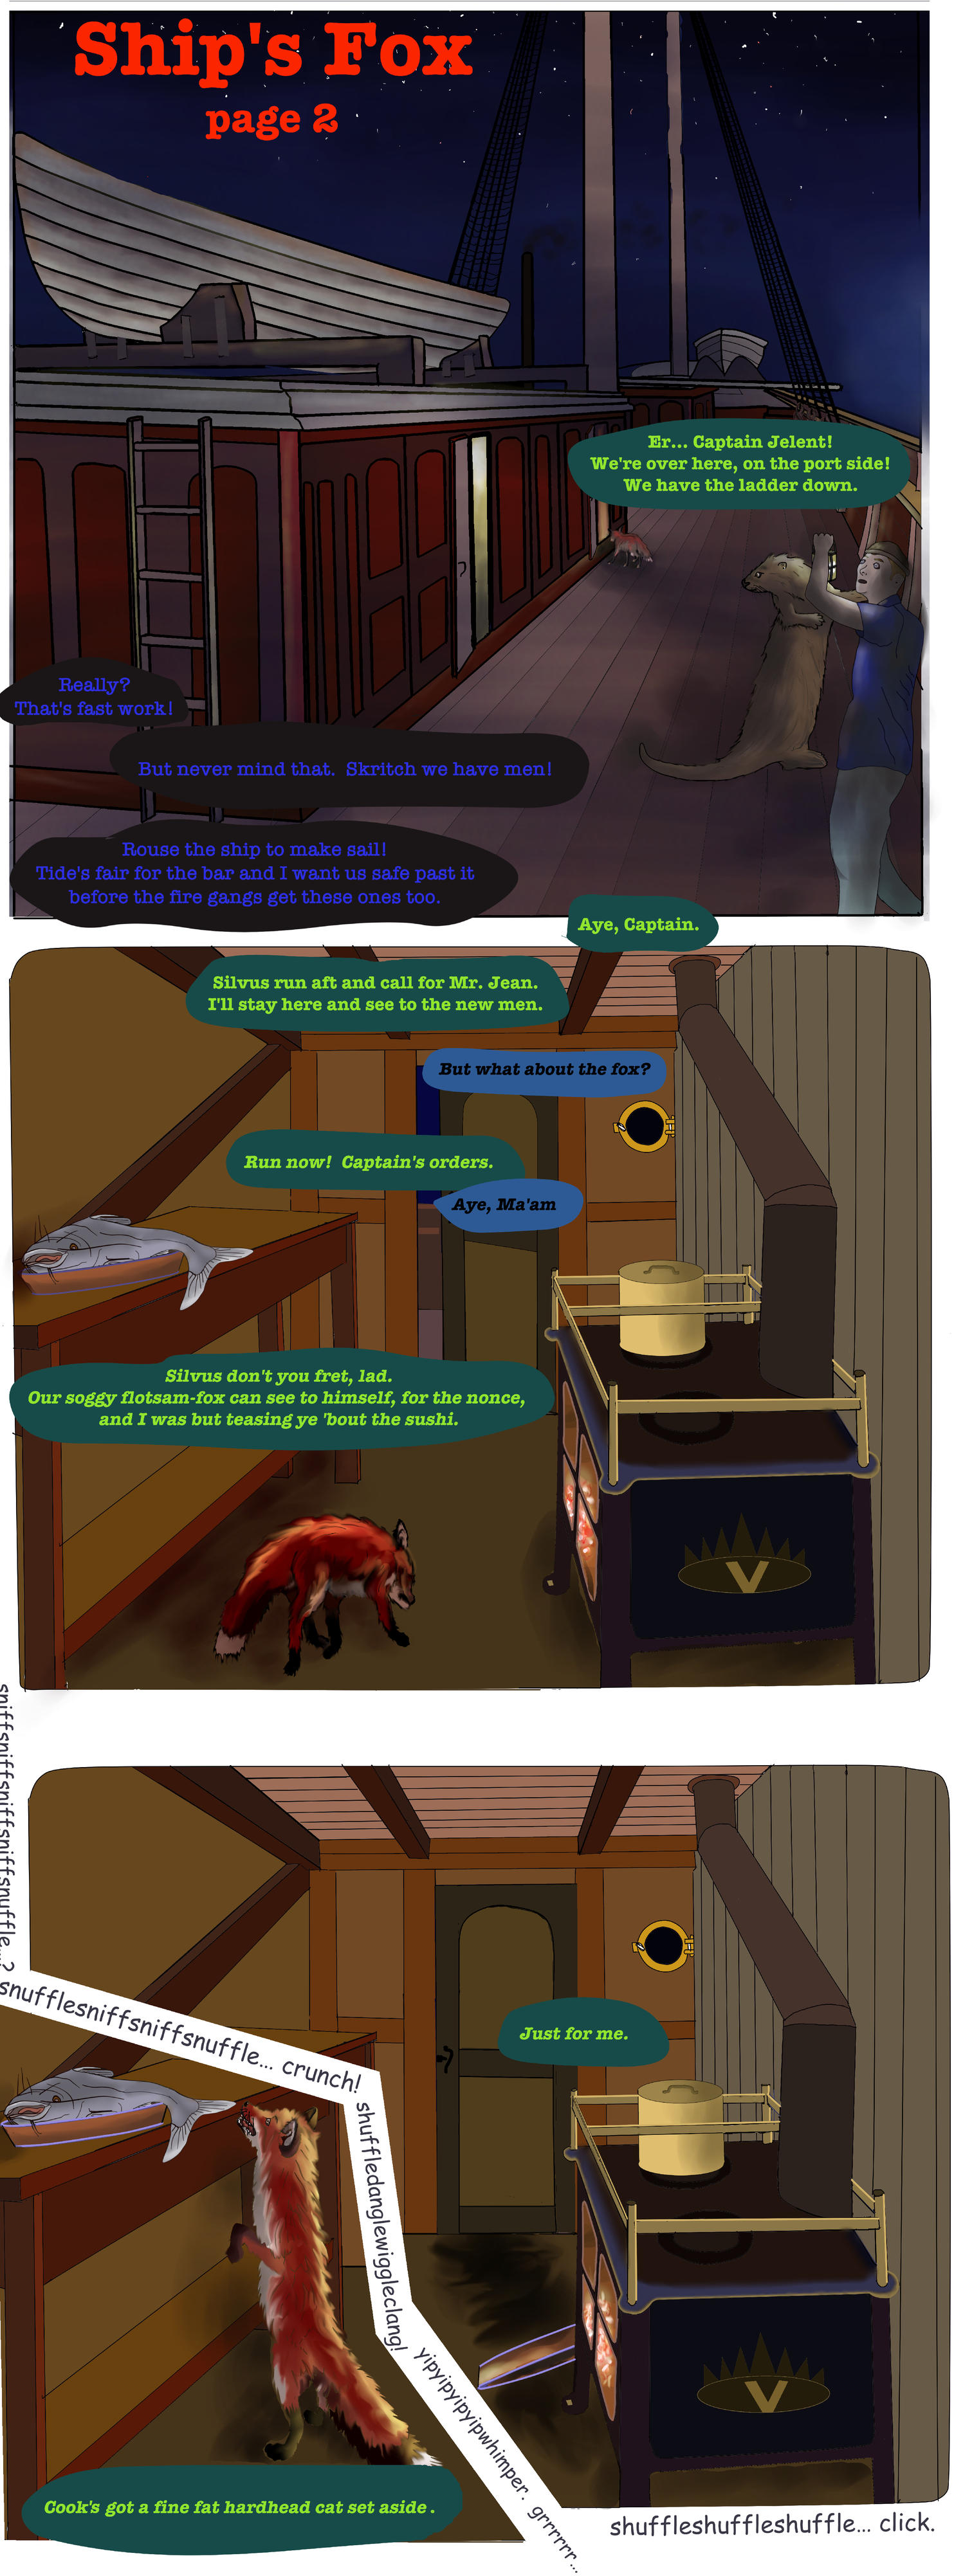 Ship's Fox page 2 by songdawg